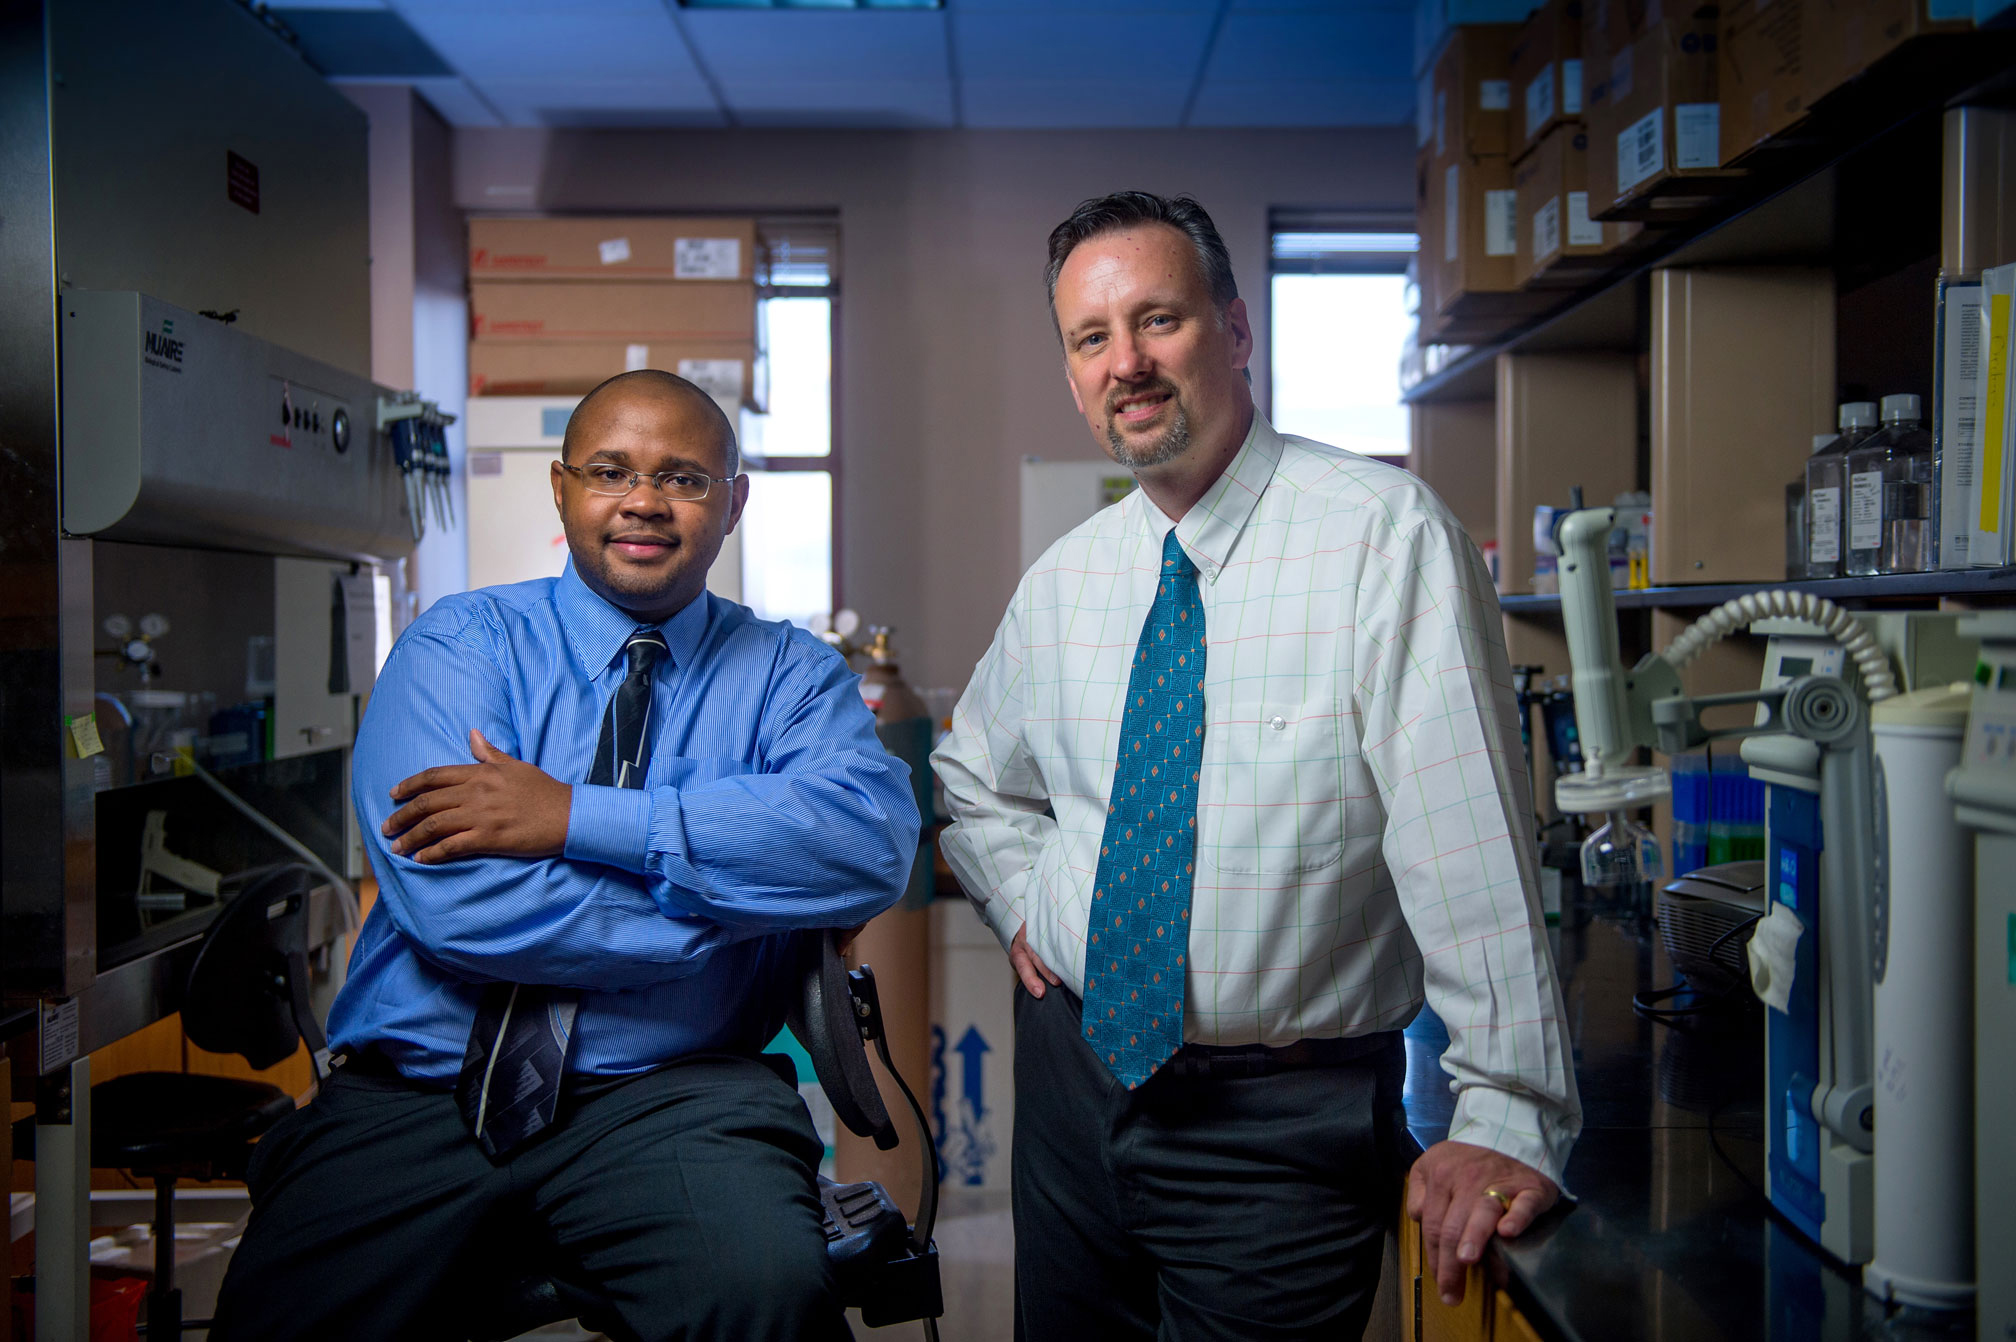 UGA researchers Franklin West and Steve Stice have developed pig induced pluripotent stem cell from pig skin cells. These cells can be used to replace damaged neural rosette cells.